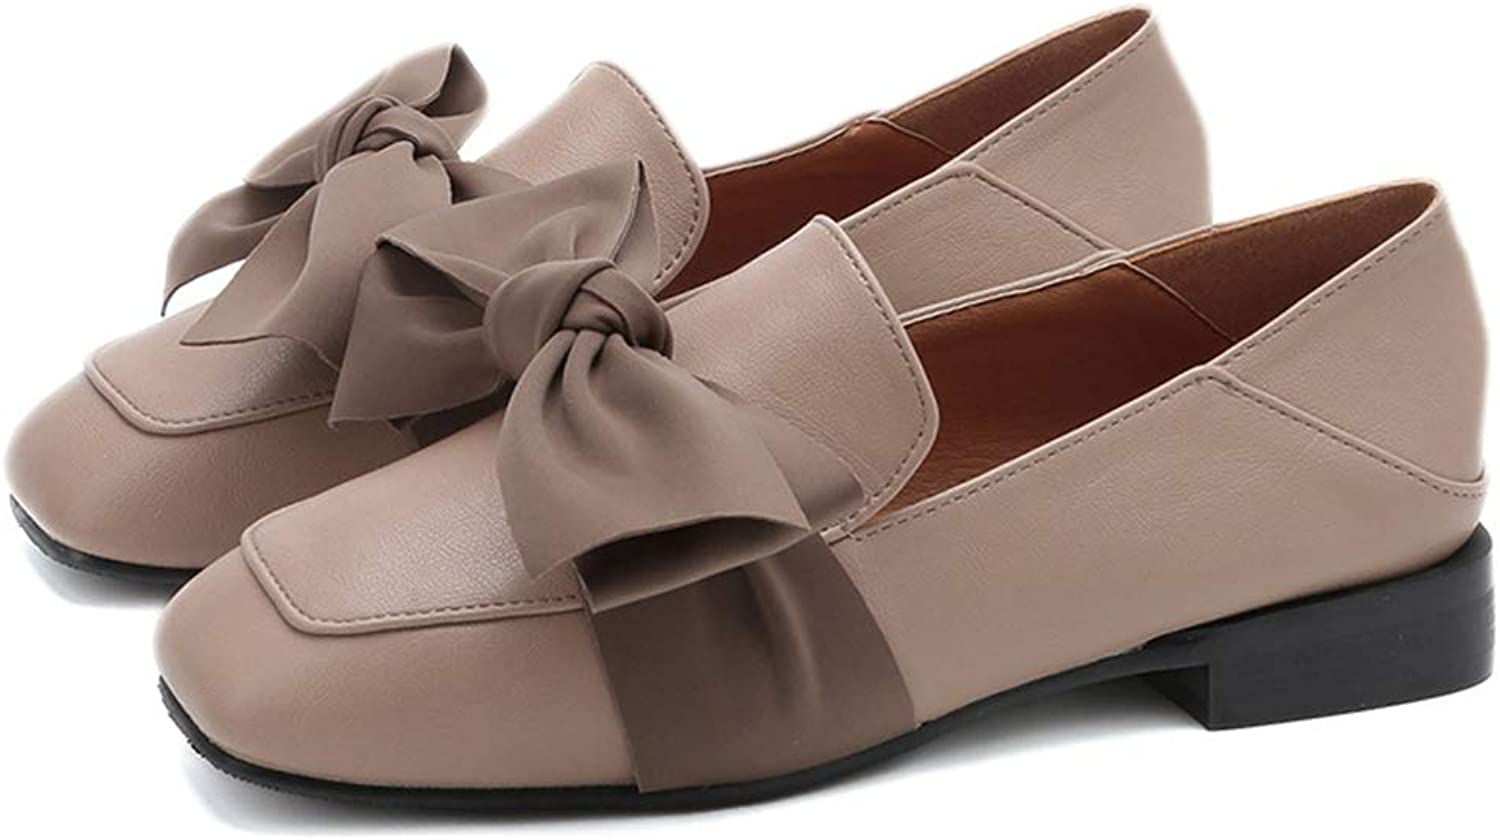 GIY Women Casual Low Heel Loafers Bowknot Lightweight Comfortable Square Toe Slip On Oxford shoes